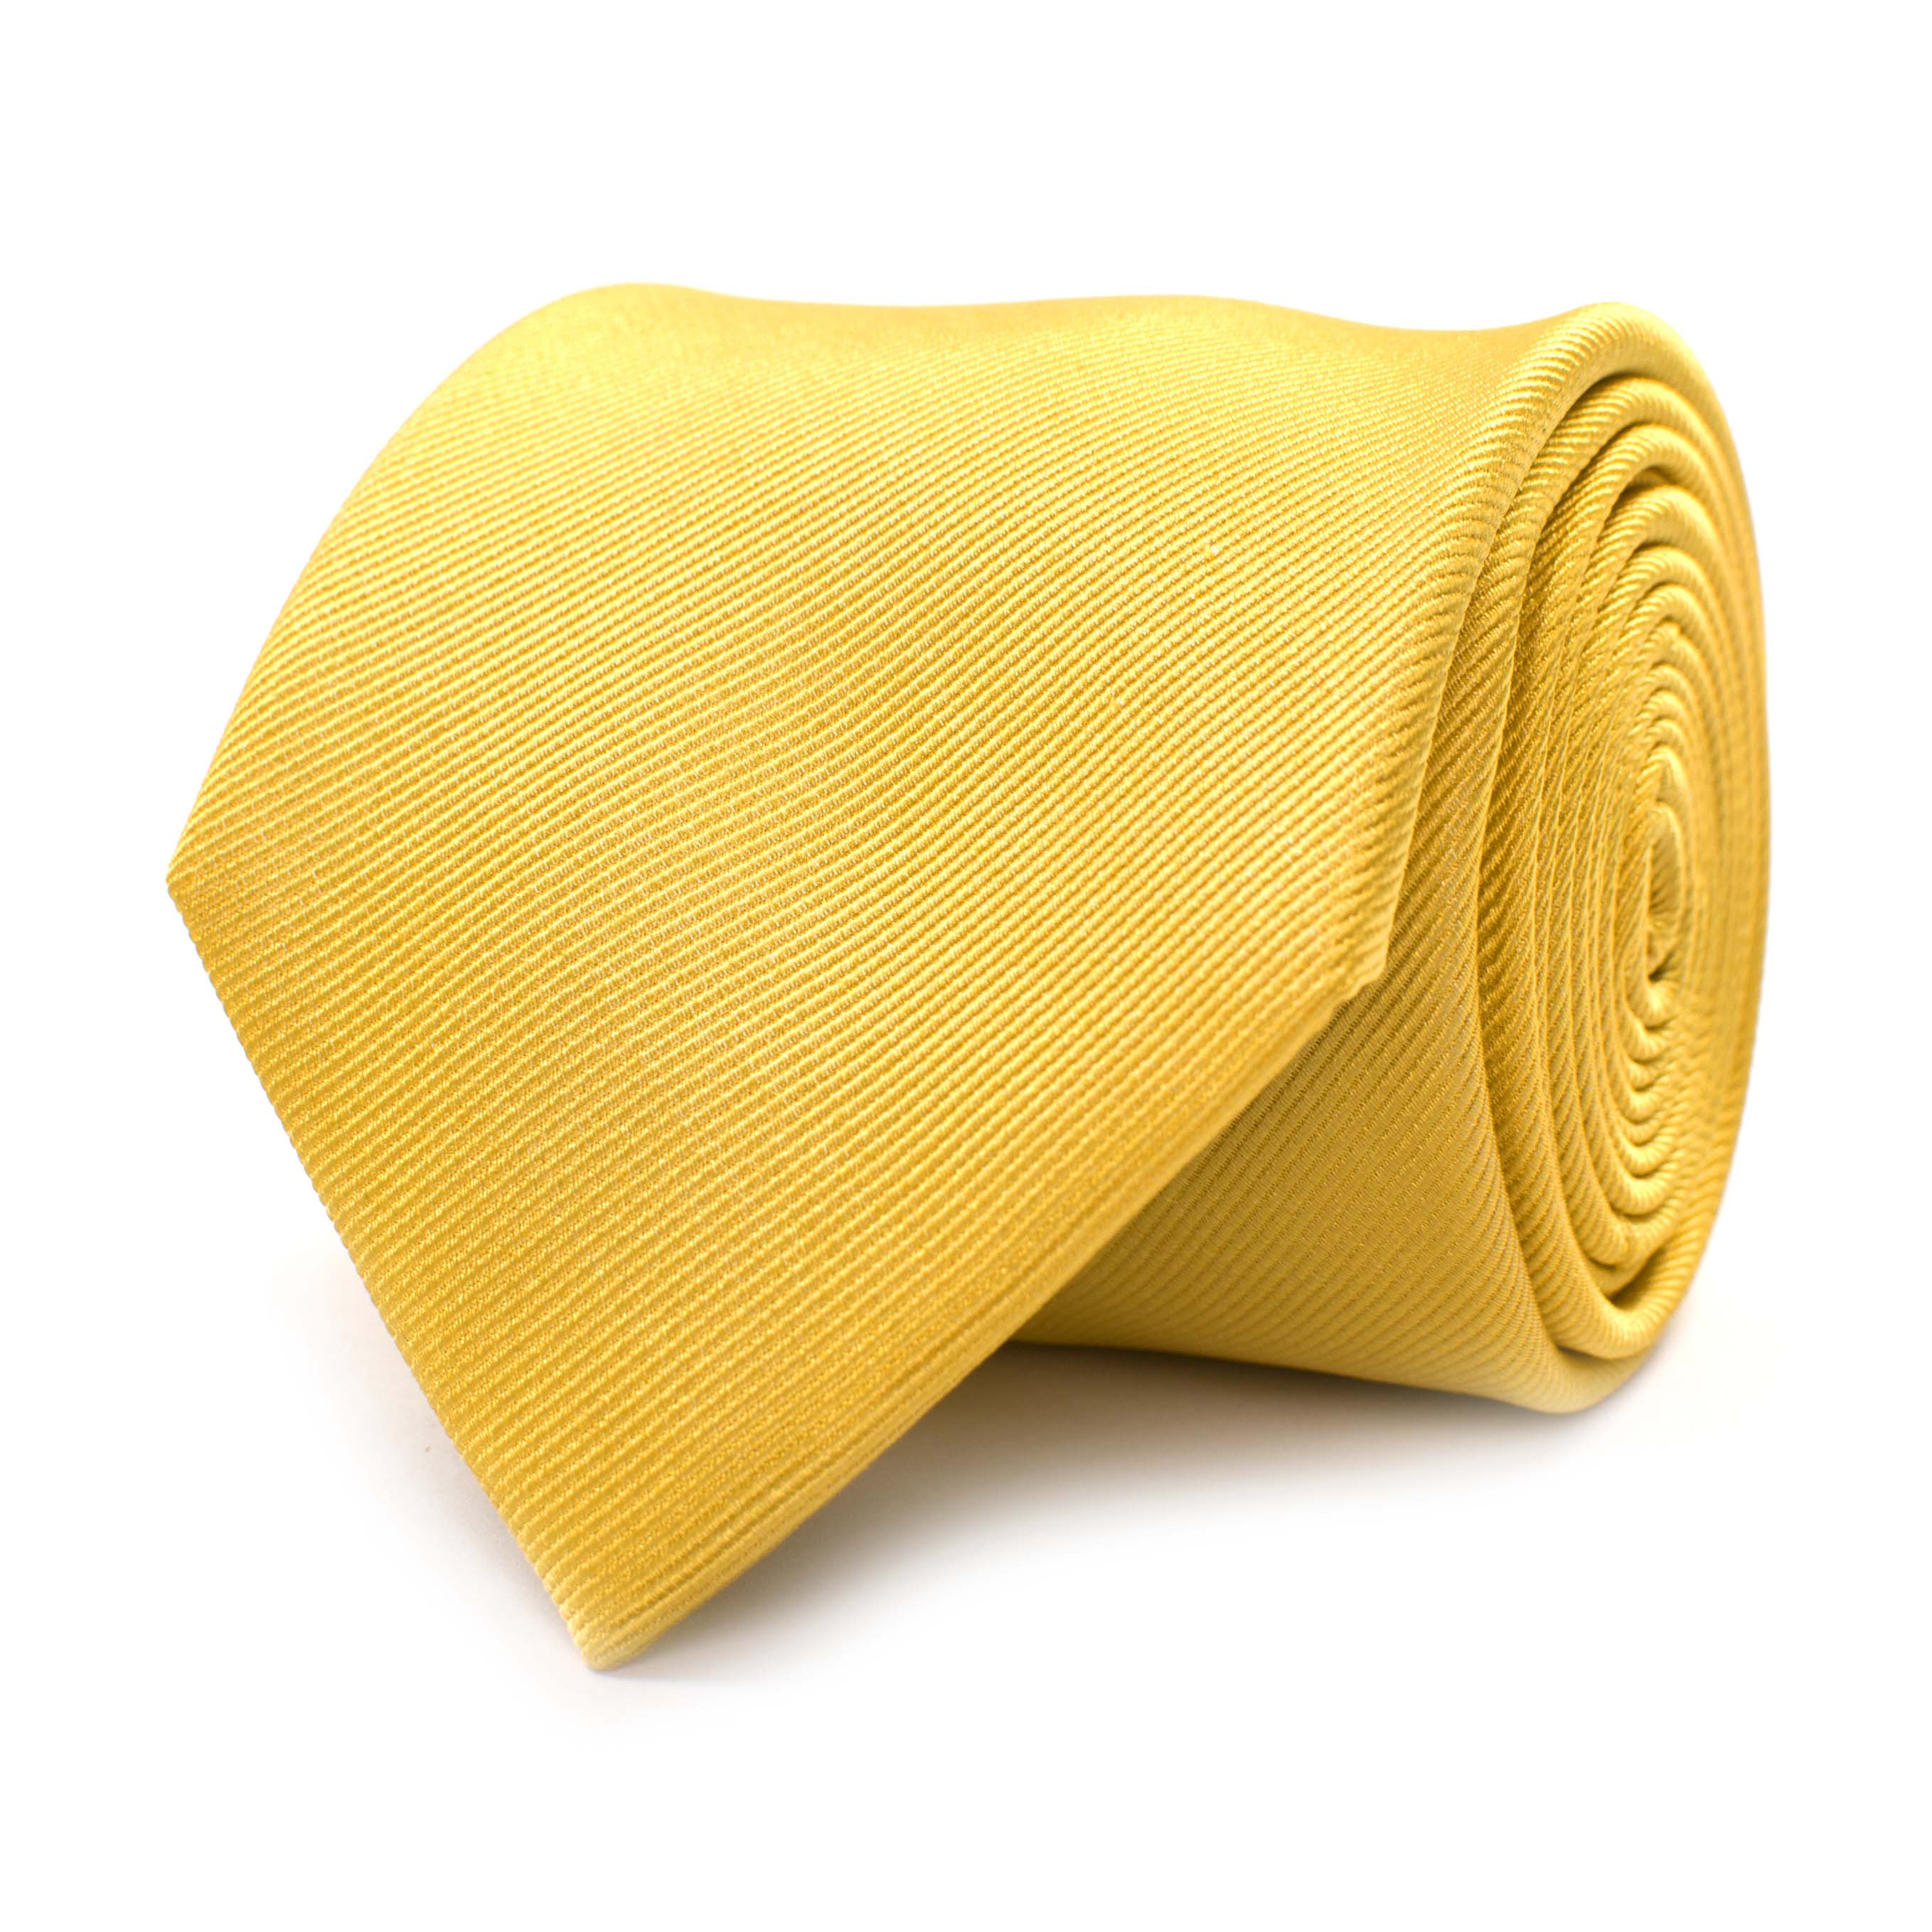 Tie classic ribbed gold